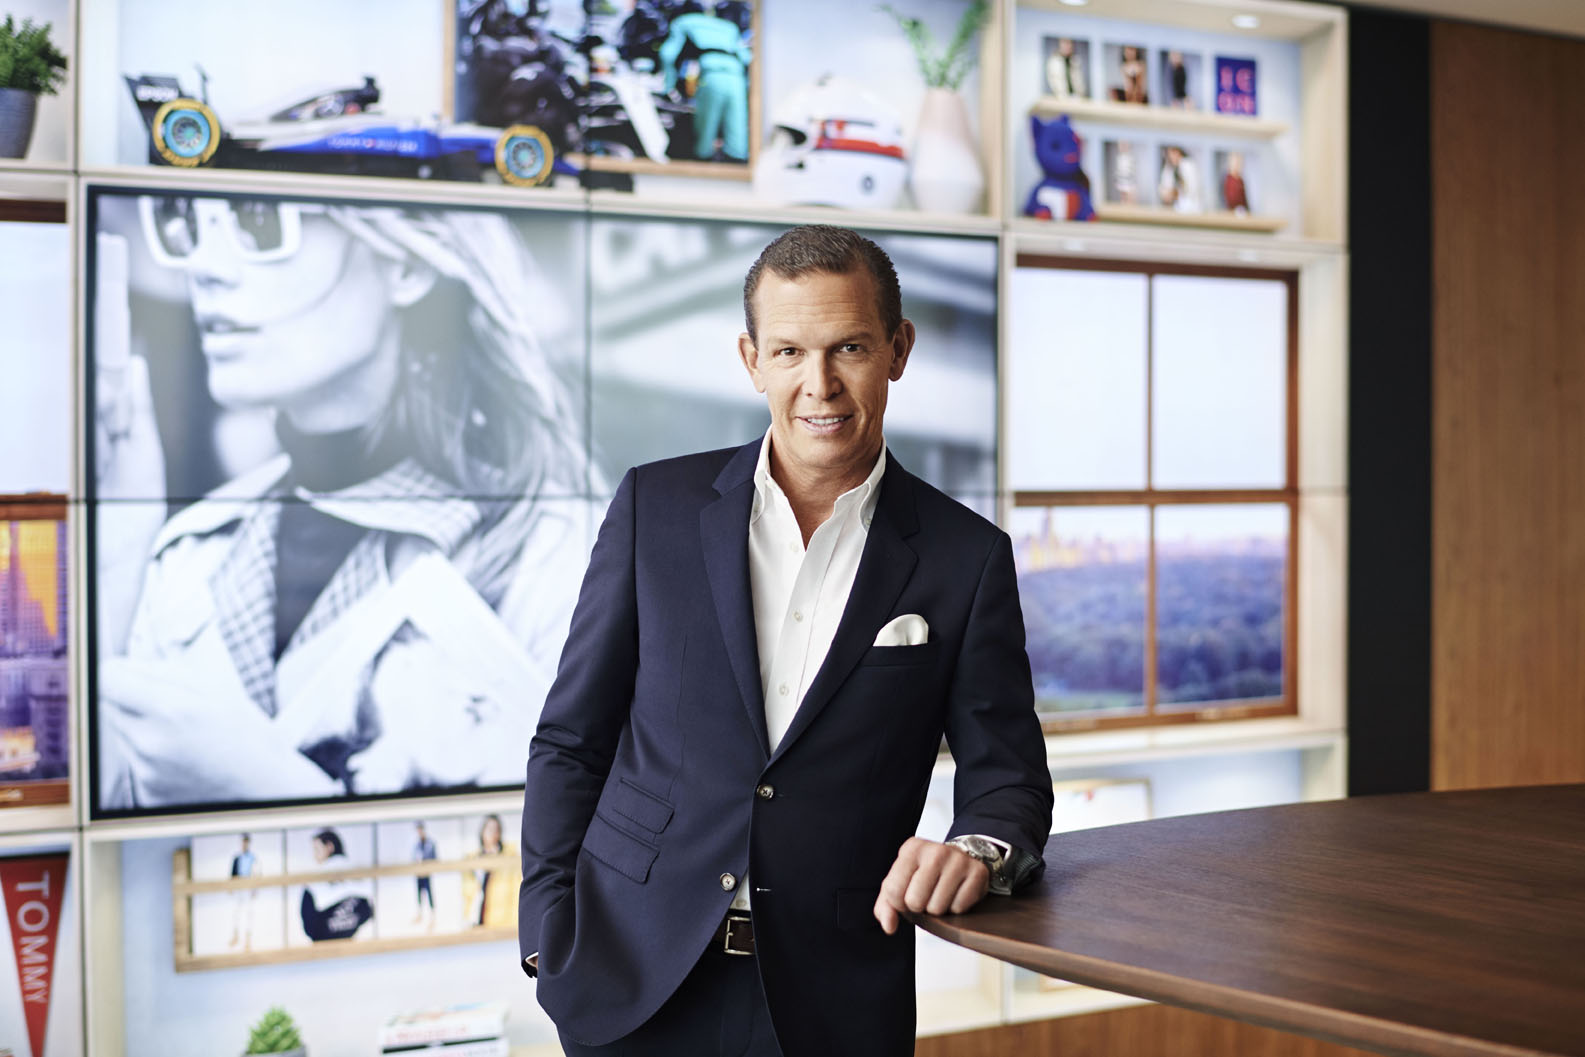 Tommy Hilfiger's next global expansion plans